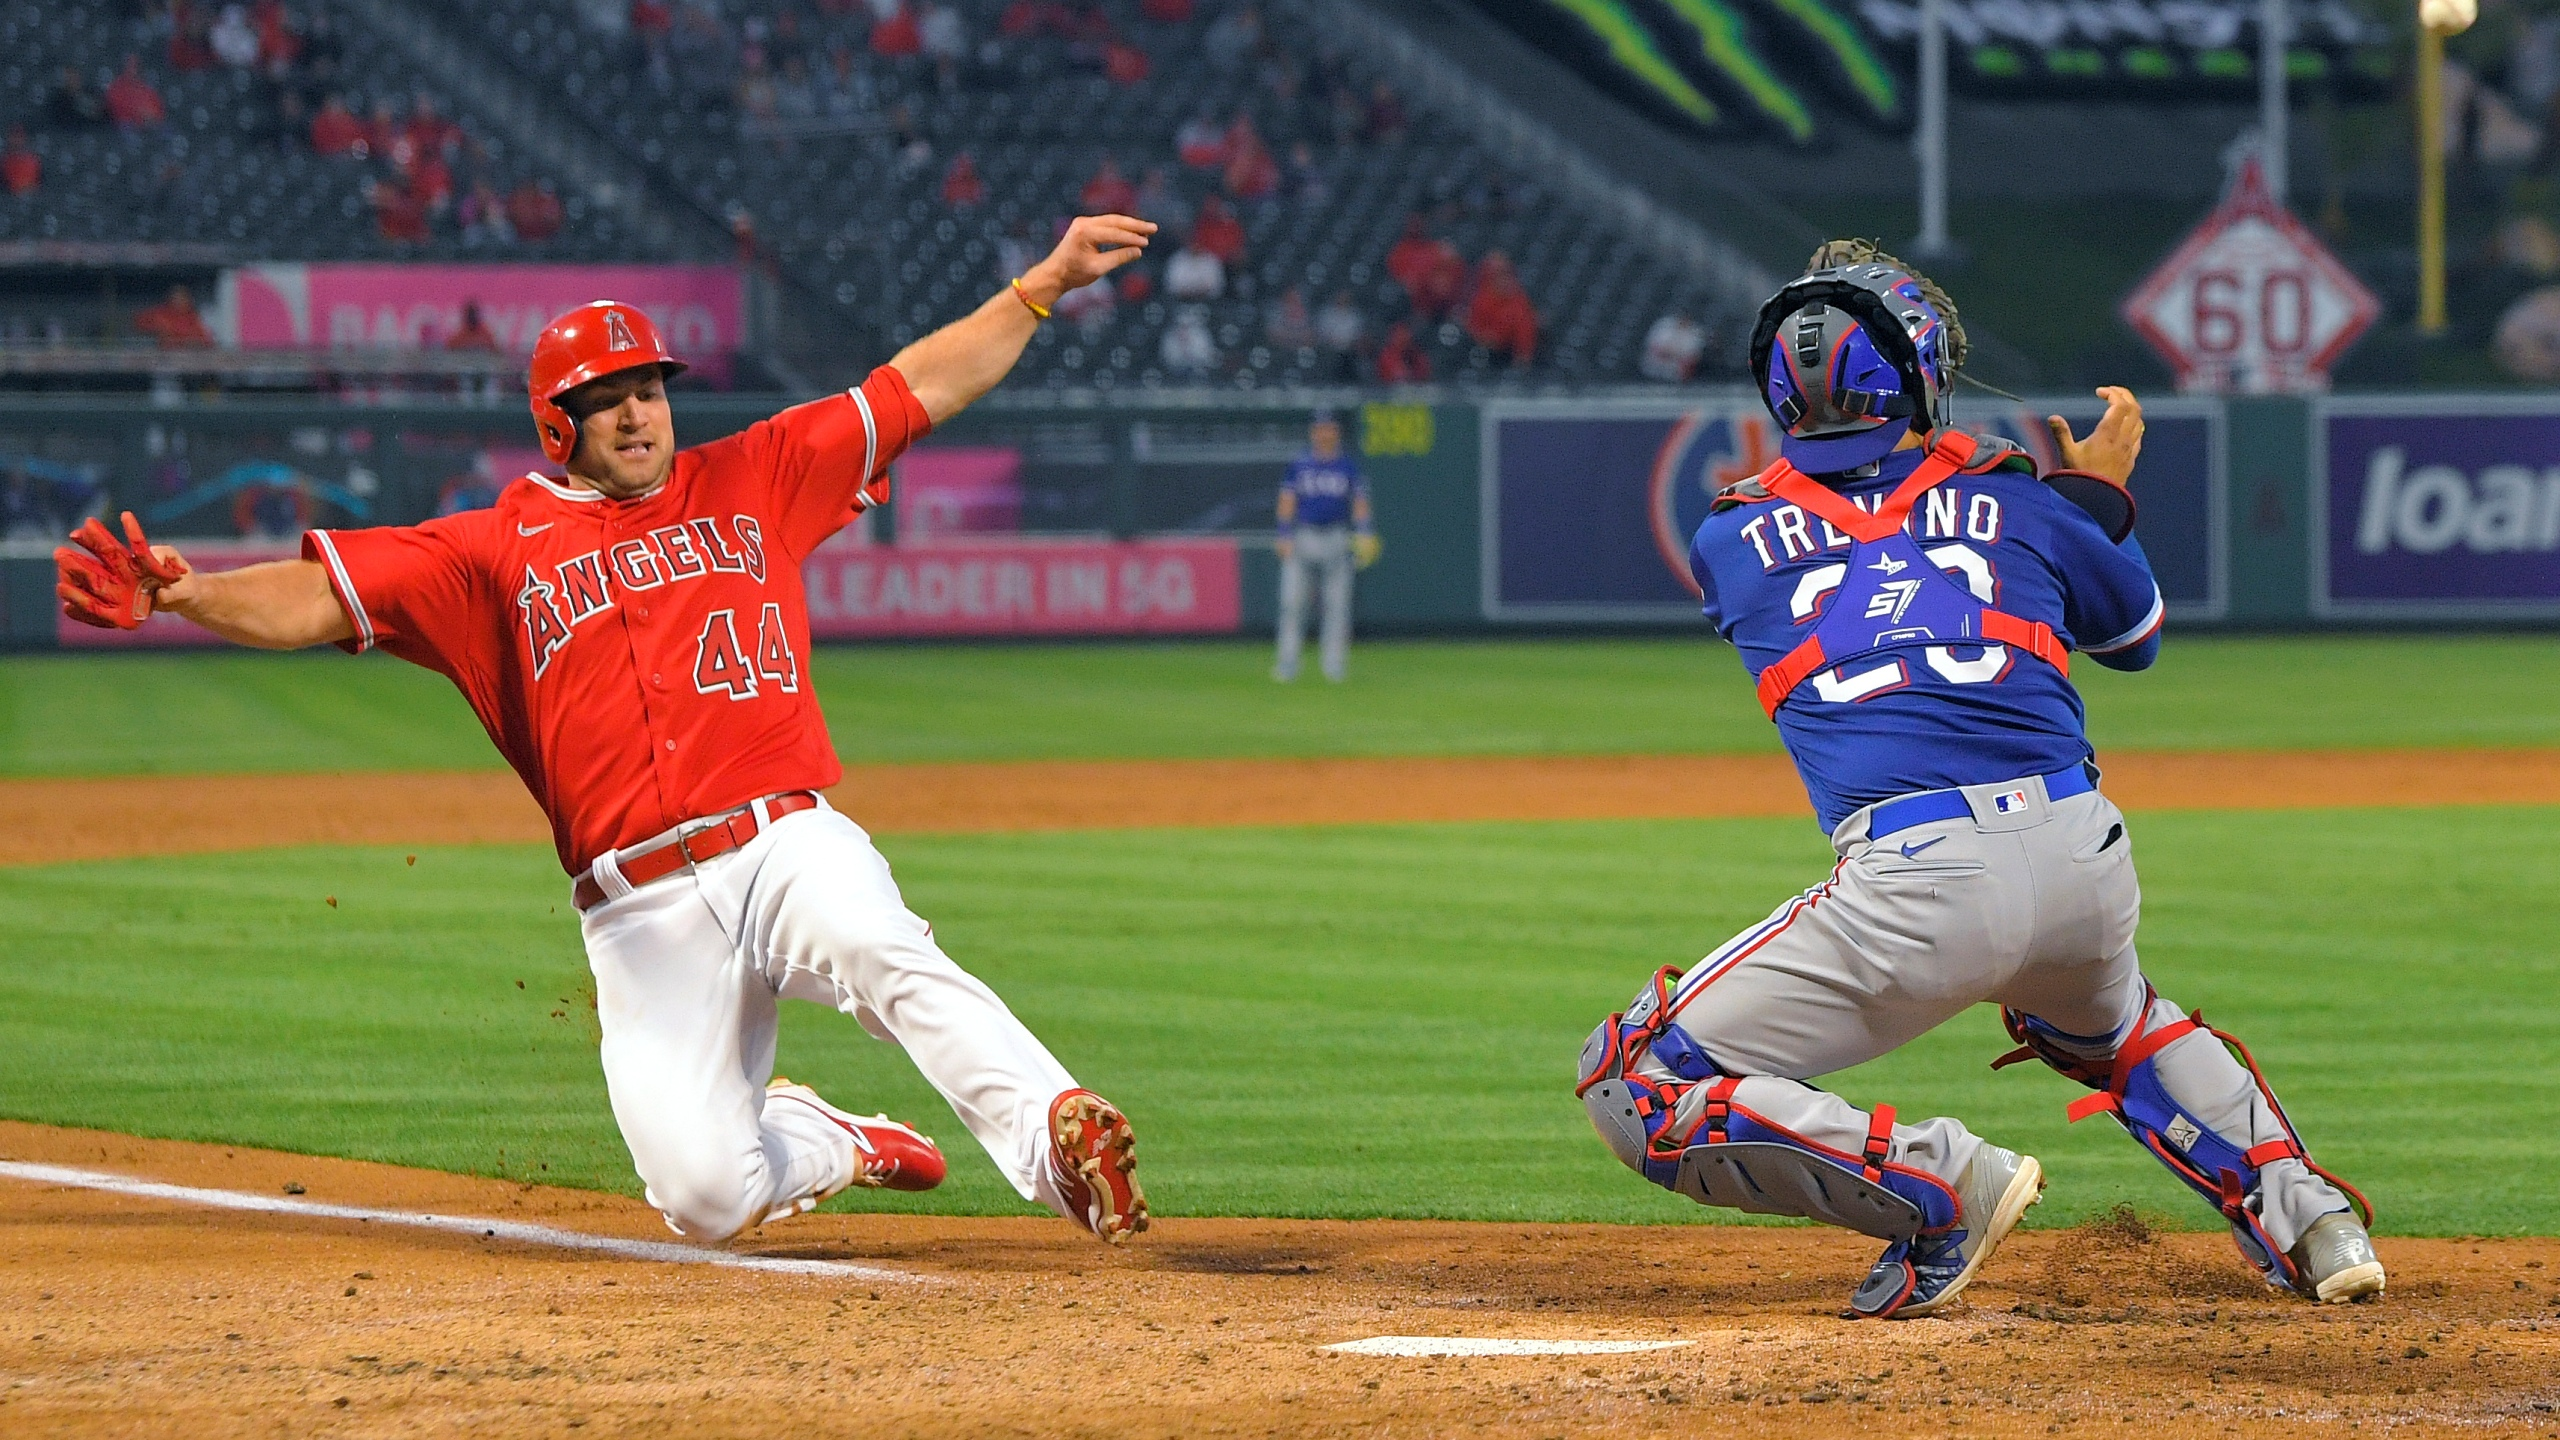 Los Angeles Angels' Scott Schebler, left, scores on a sacrifice fly hit by David Fletcher as Texas Rangers catcher Jose Trevino takes a late throw during the third inning of a baseball game in Anaheim on April 20, 2021. (Mark J. Terrill / Associated Press)